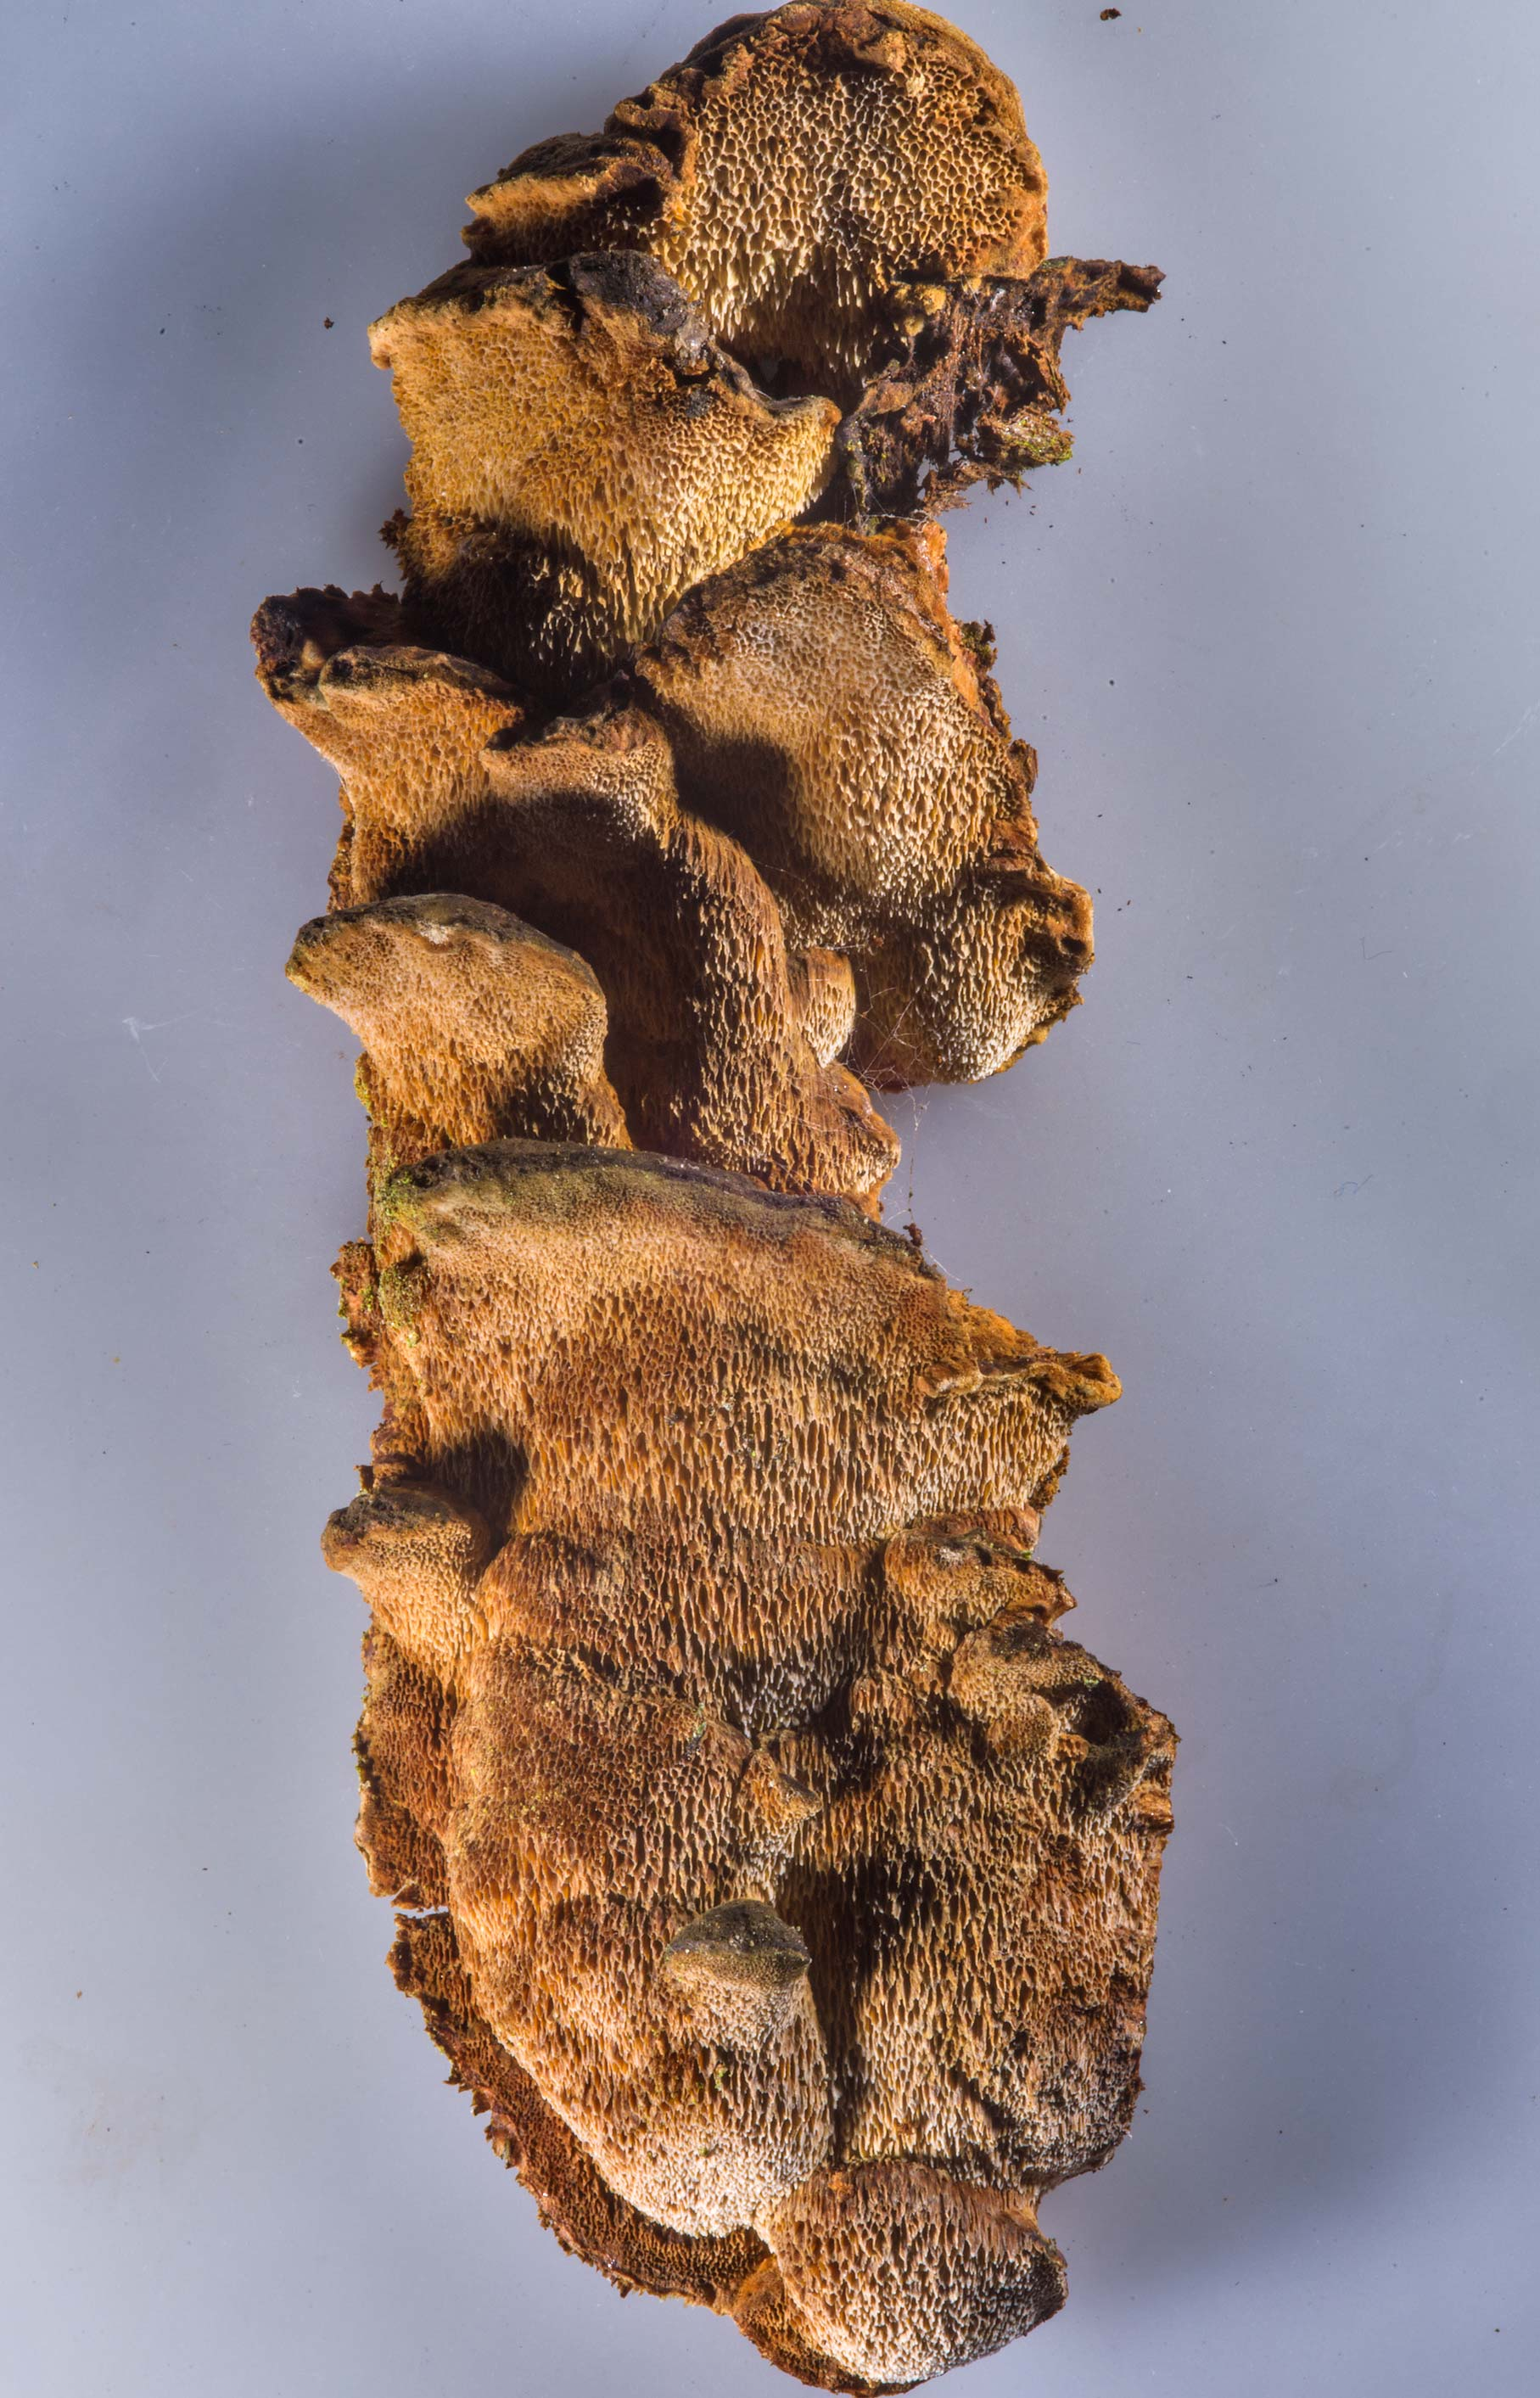 Poroid crust fungus Xanthoporia radiata...miles north from St.Petersburg. Russia